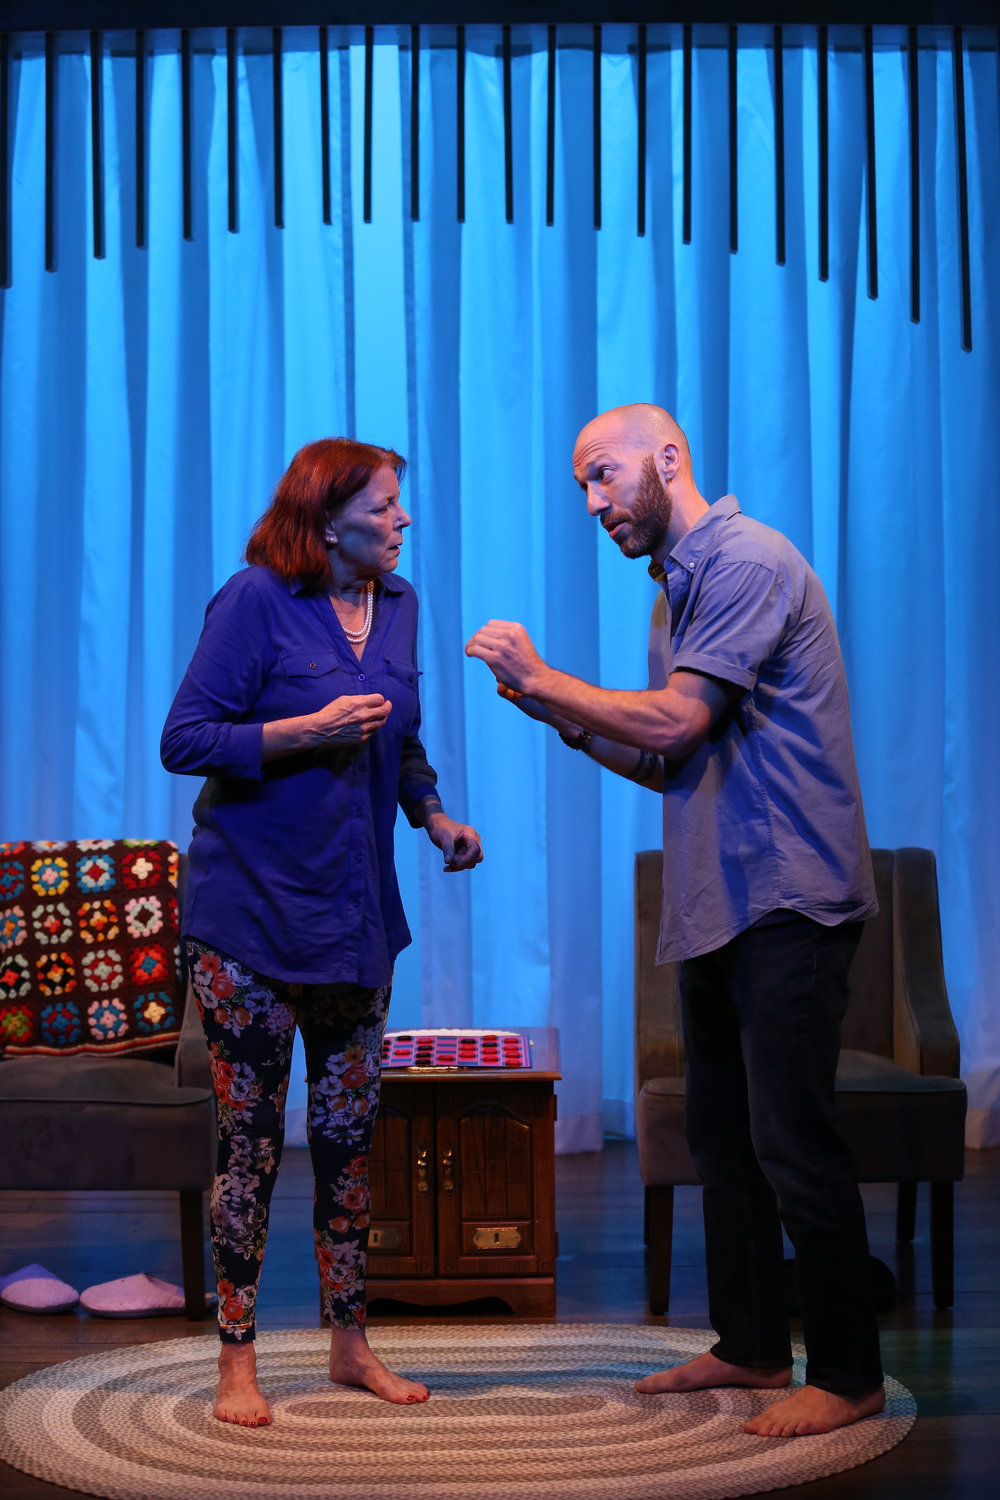 L-R: Kate Buddeke and Joel Ruben Ganz in THE LIVING ROOM by Robert O'Hara, part of Summer Shorts 2018 at 59E59 Theaters. Photo by Carol Rosegg.